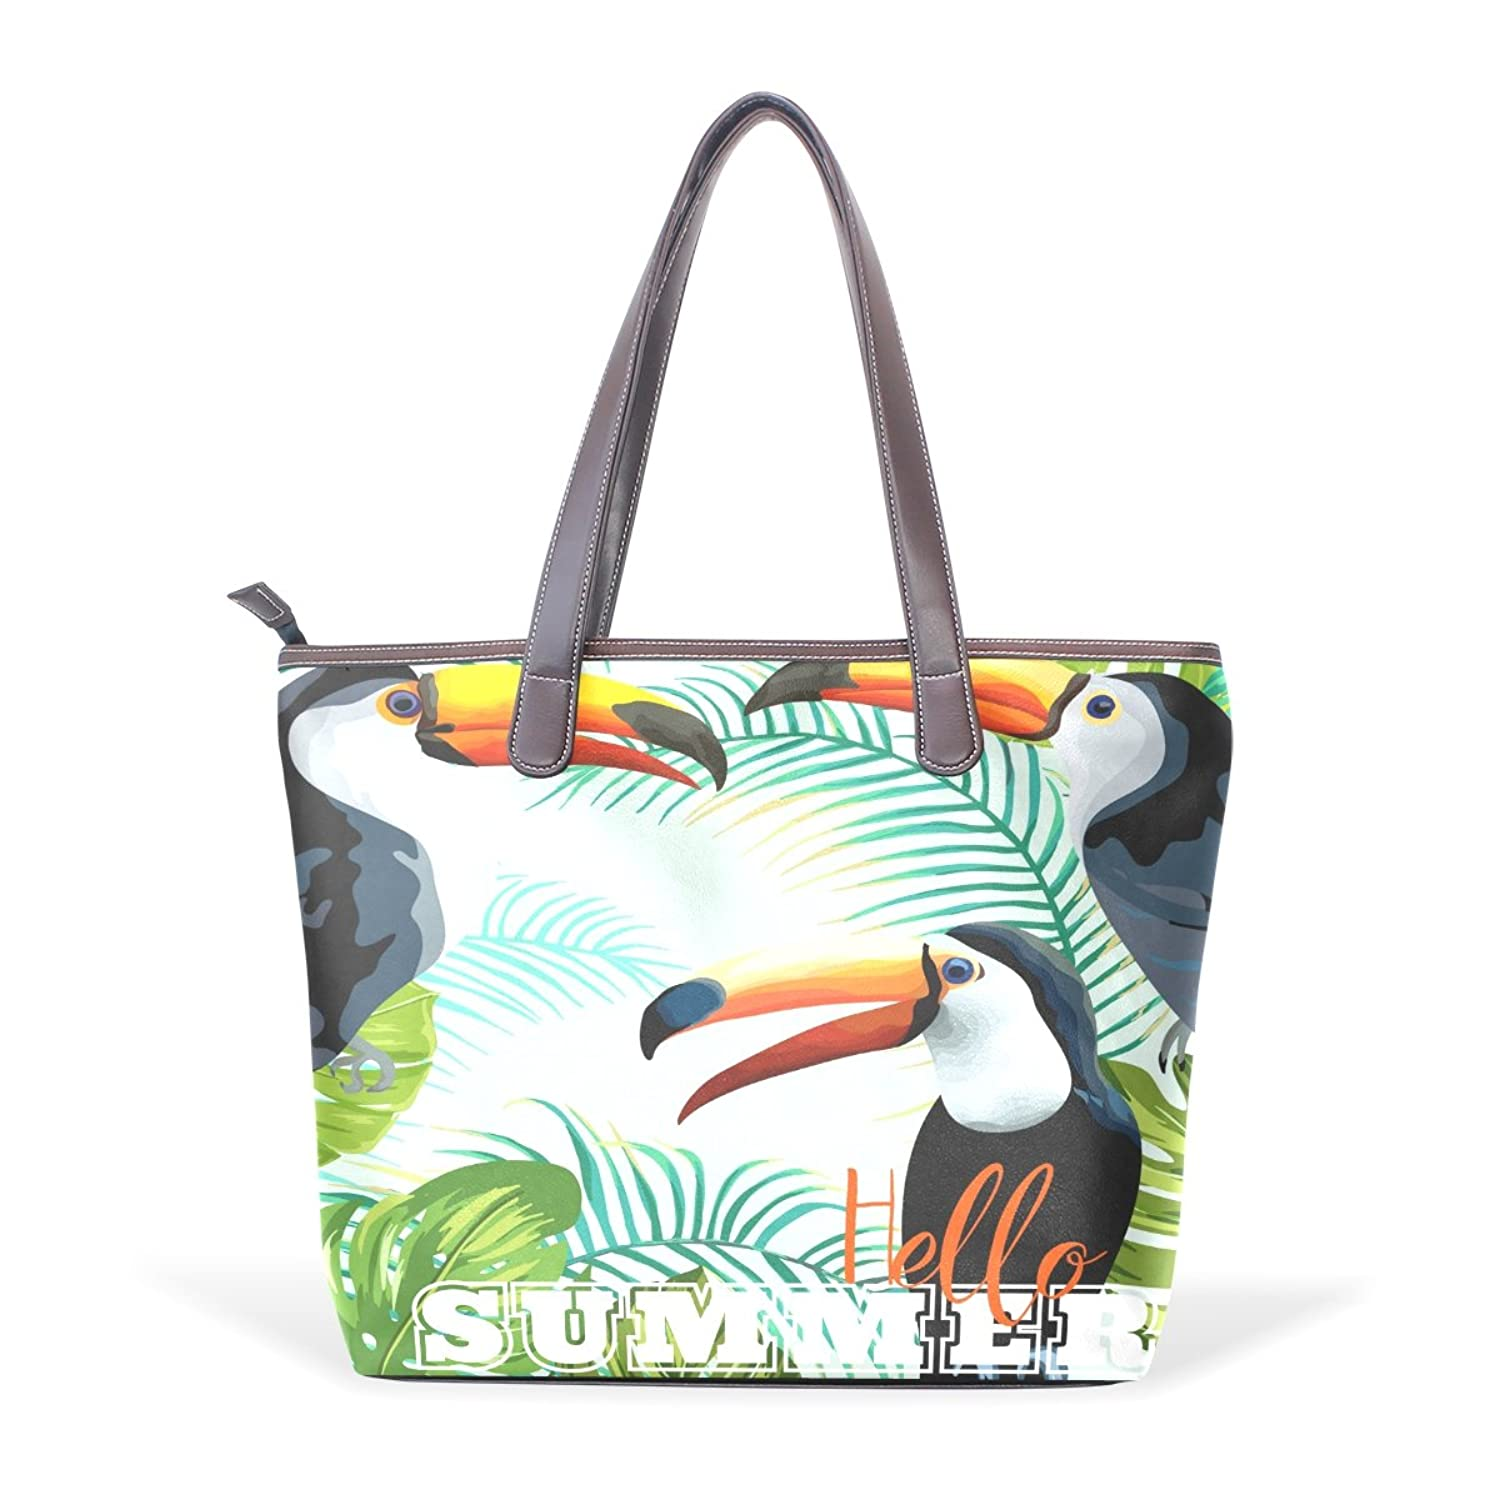 Mr.Weng Household Summer Toucan Lady Handbag Tote Bag Zipper Shoulder Bag